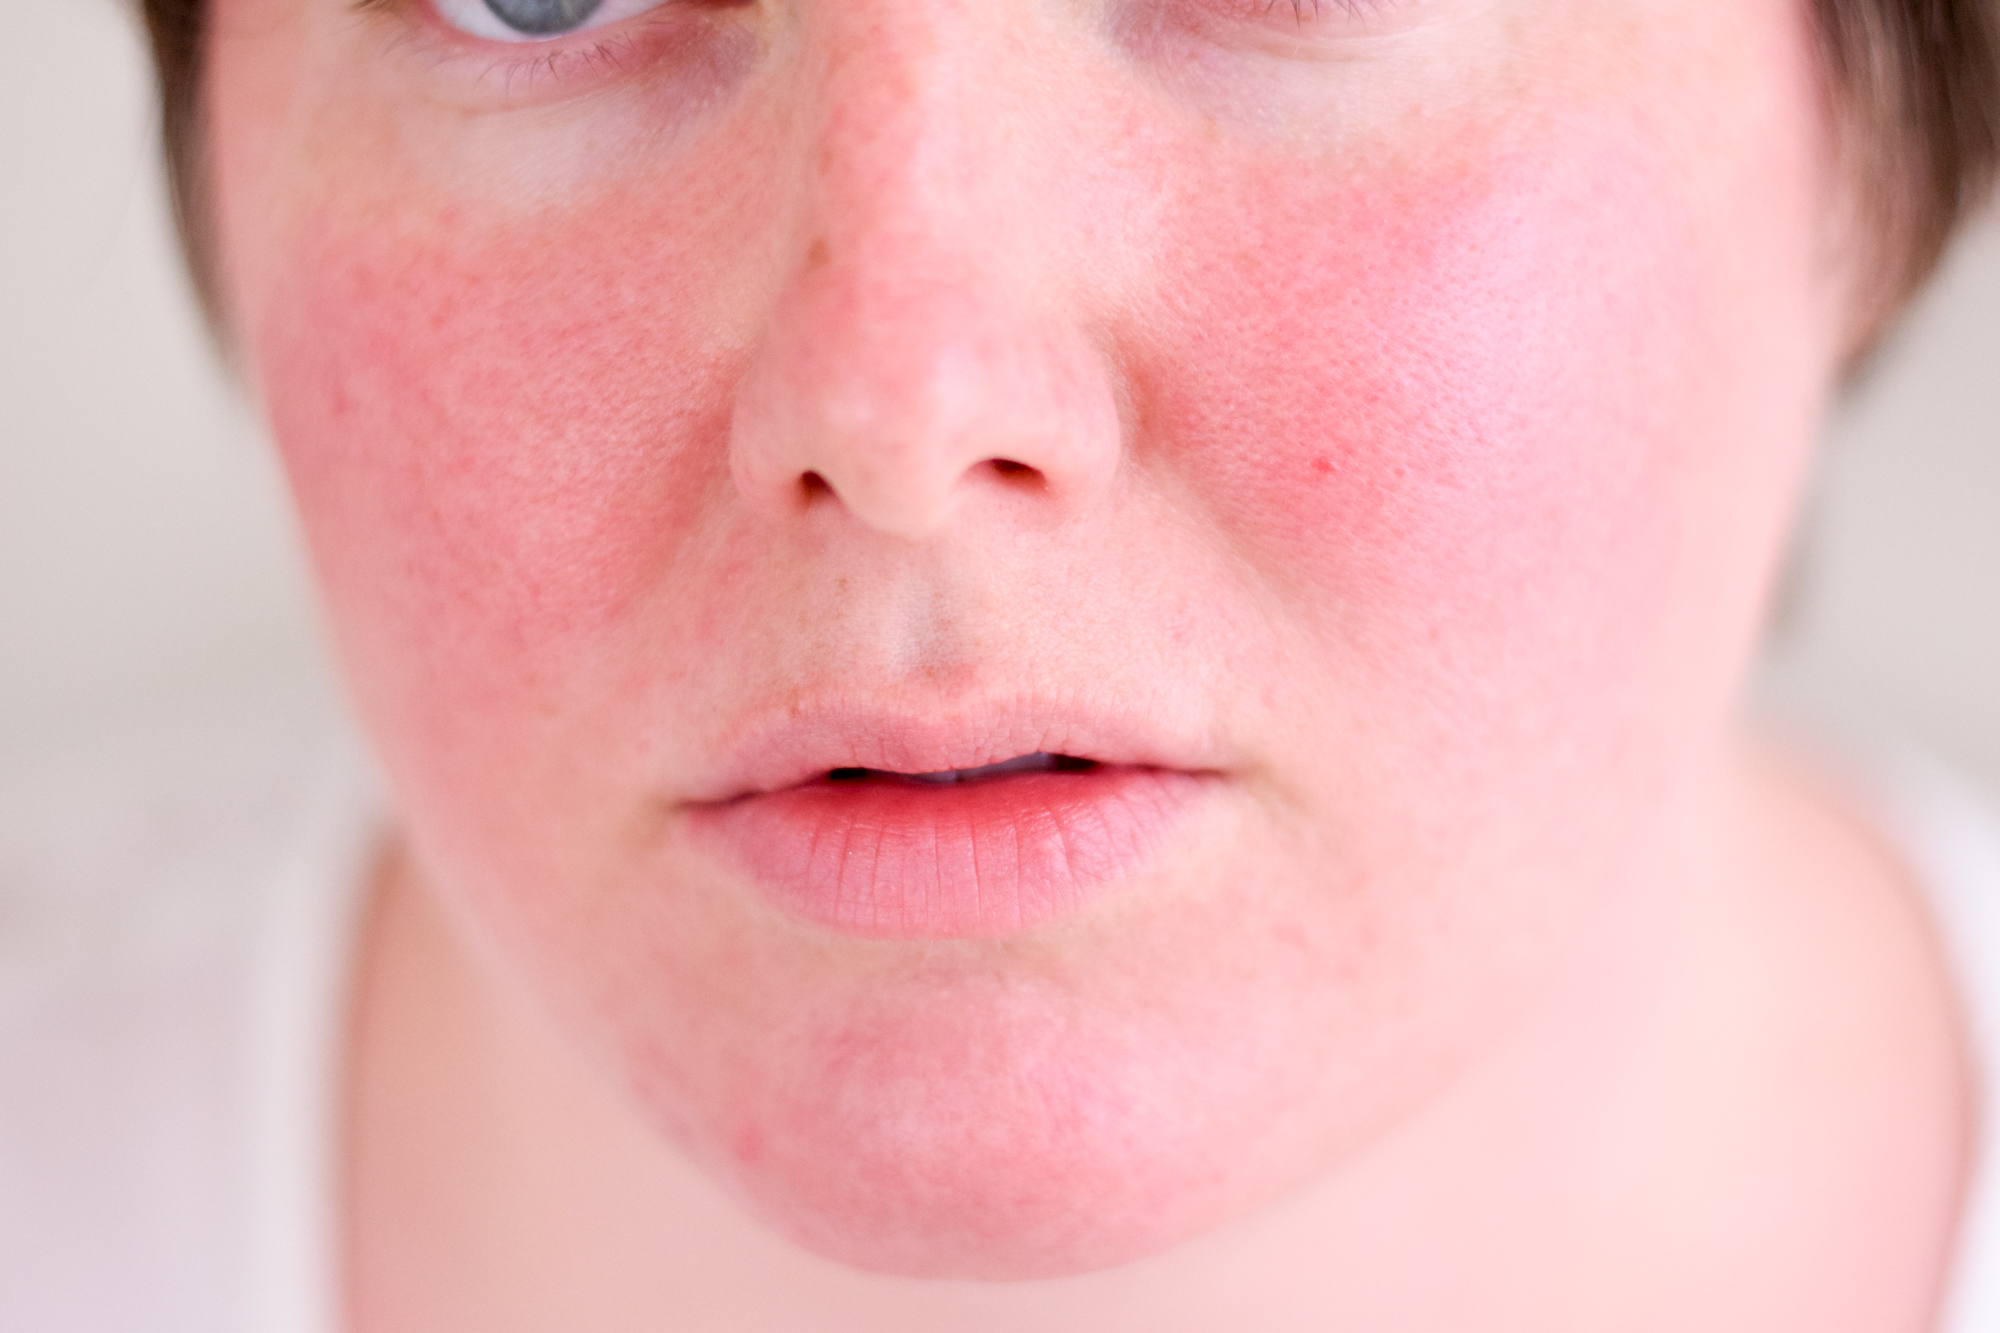 How to get rid of body odor – Tips to control, prevent the body odour advise